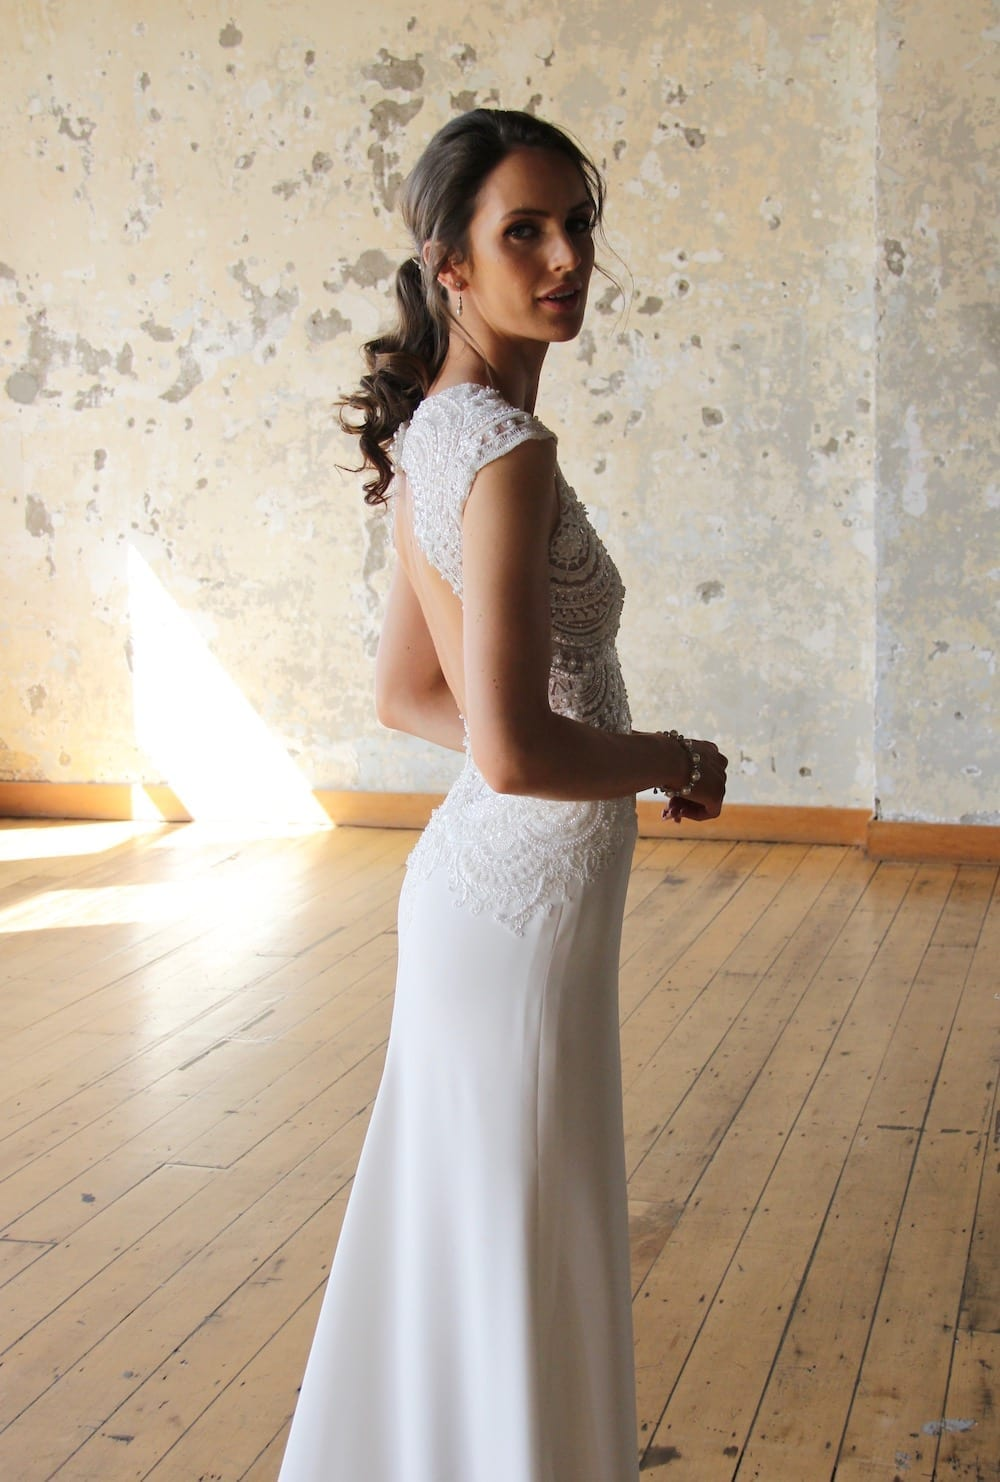 Female model wearing Vinka Design Modern Muse Wedding Dress. In chic warehouse the side detail of a gown with a a richly beaded lace bodice, deep v-neckline, wide shoulders and a slim crepe skirt with a train.